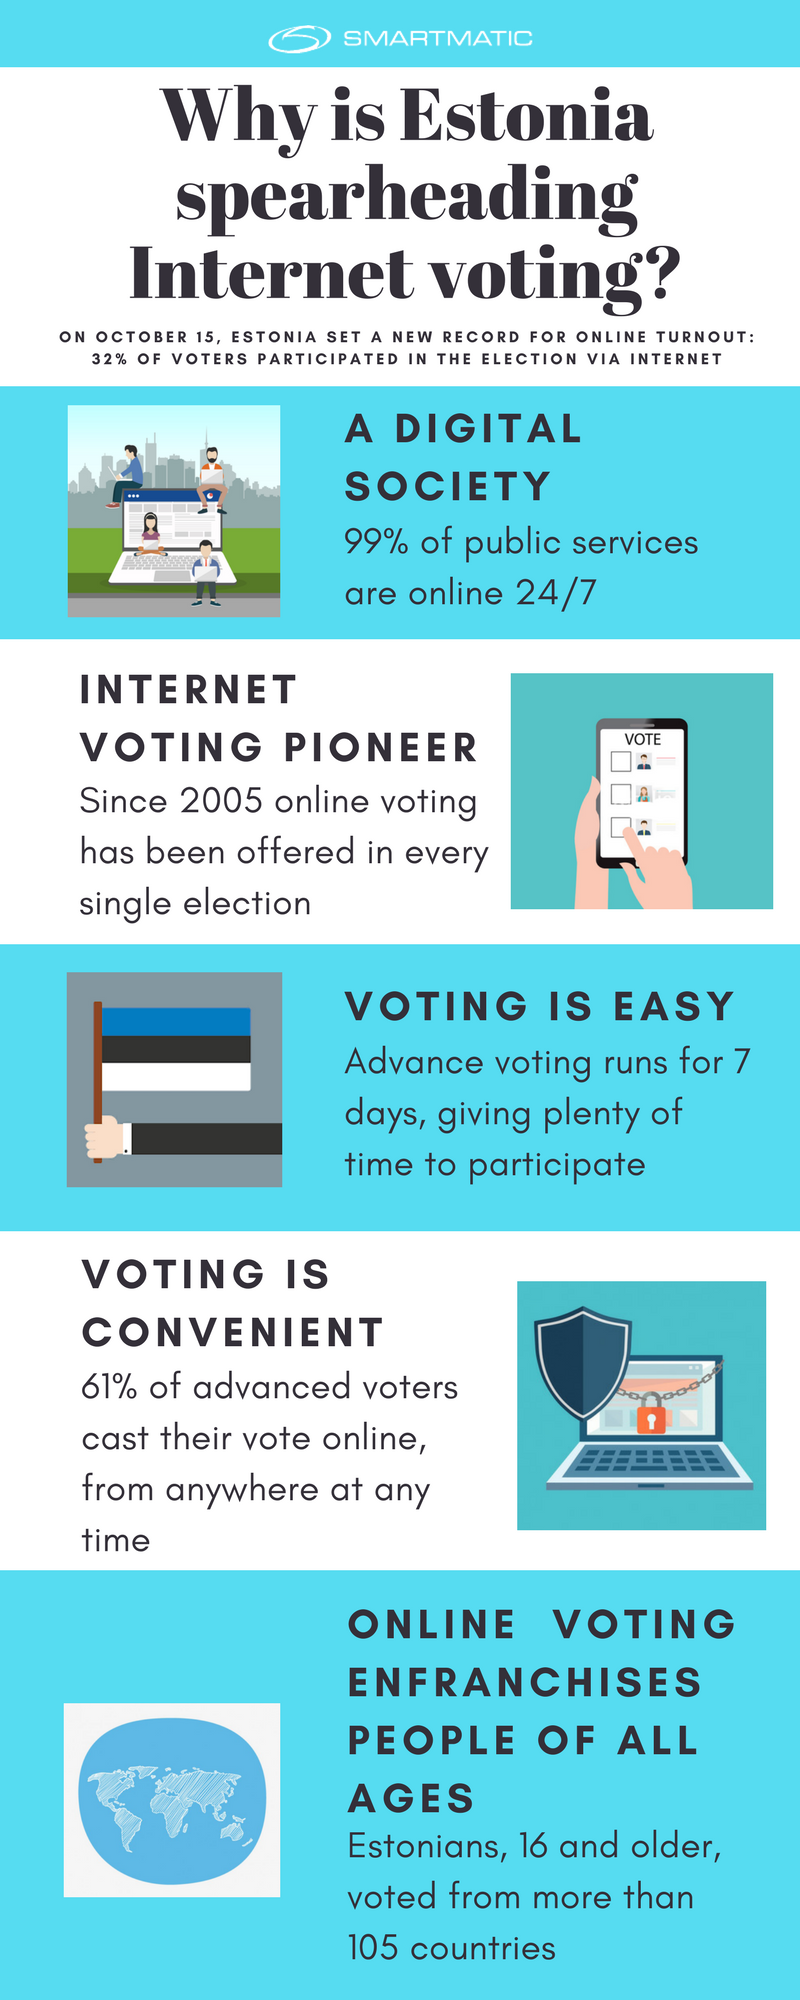 Estonia - Digital Democracy